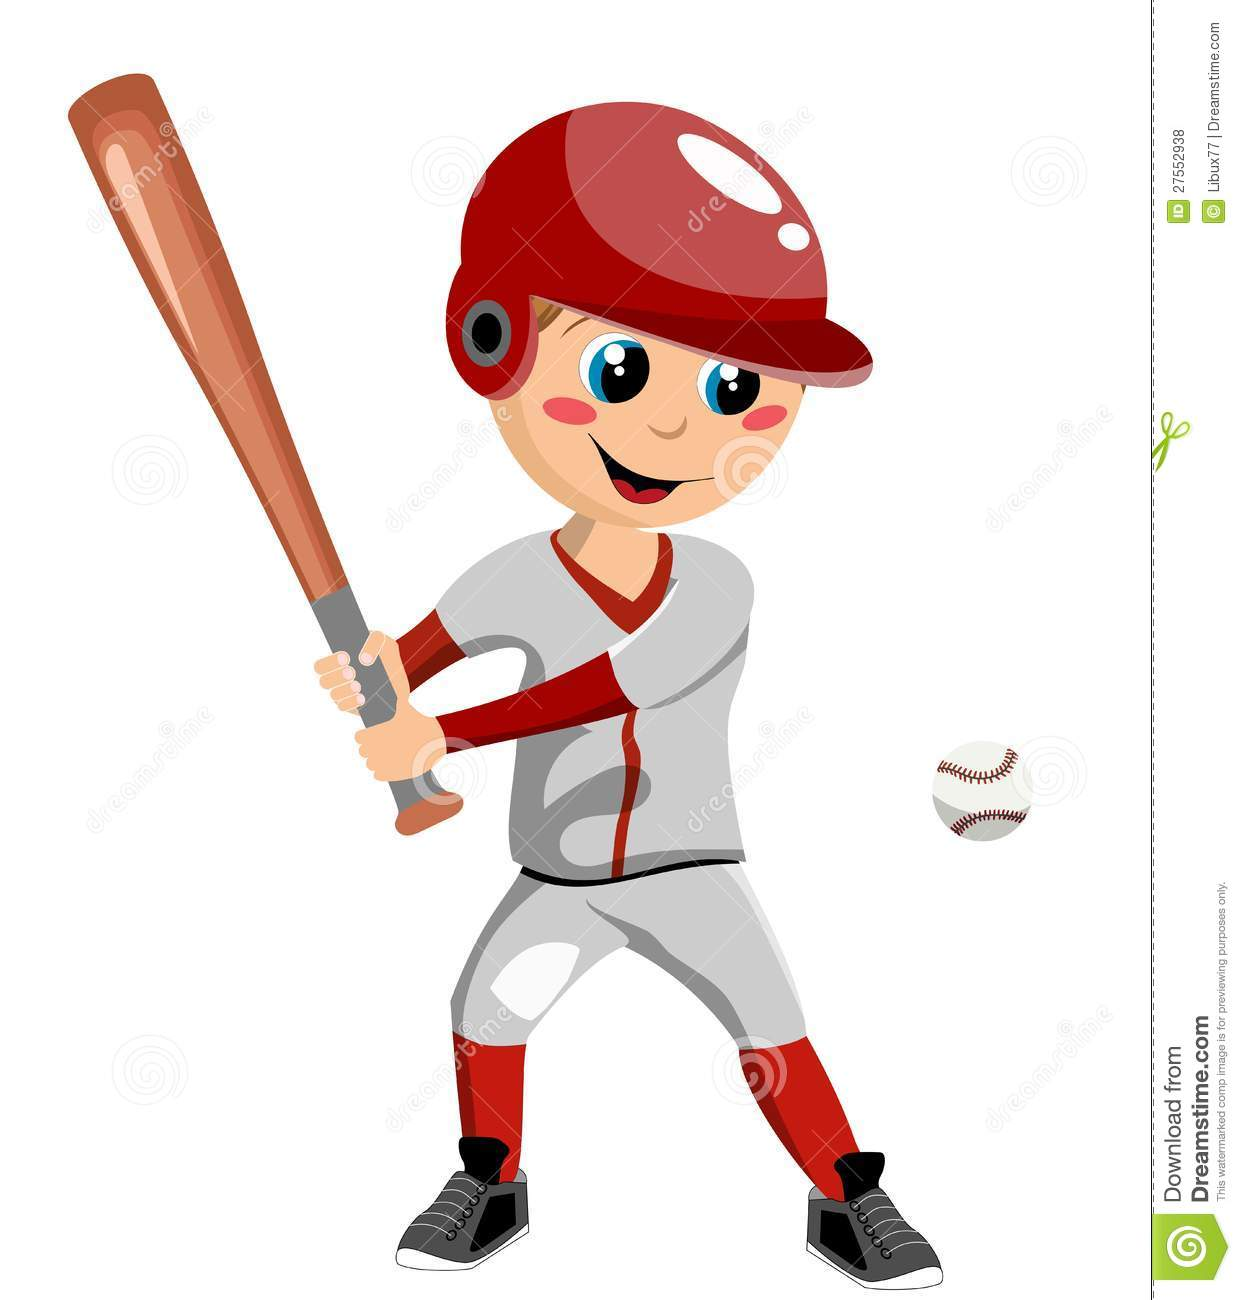 cartoon boy playing baseball clip art on birthday cake for boy images